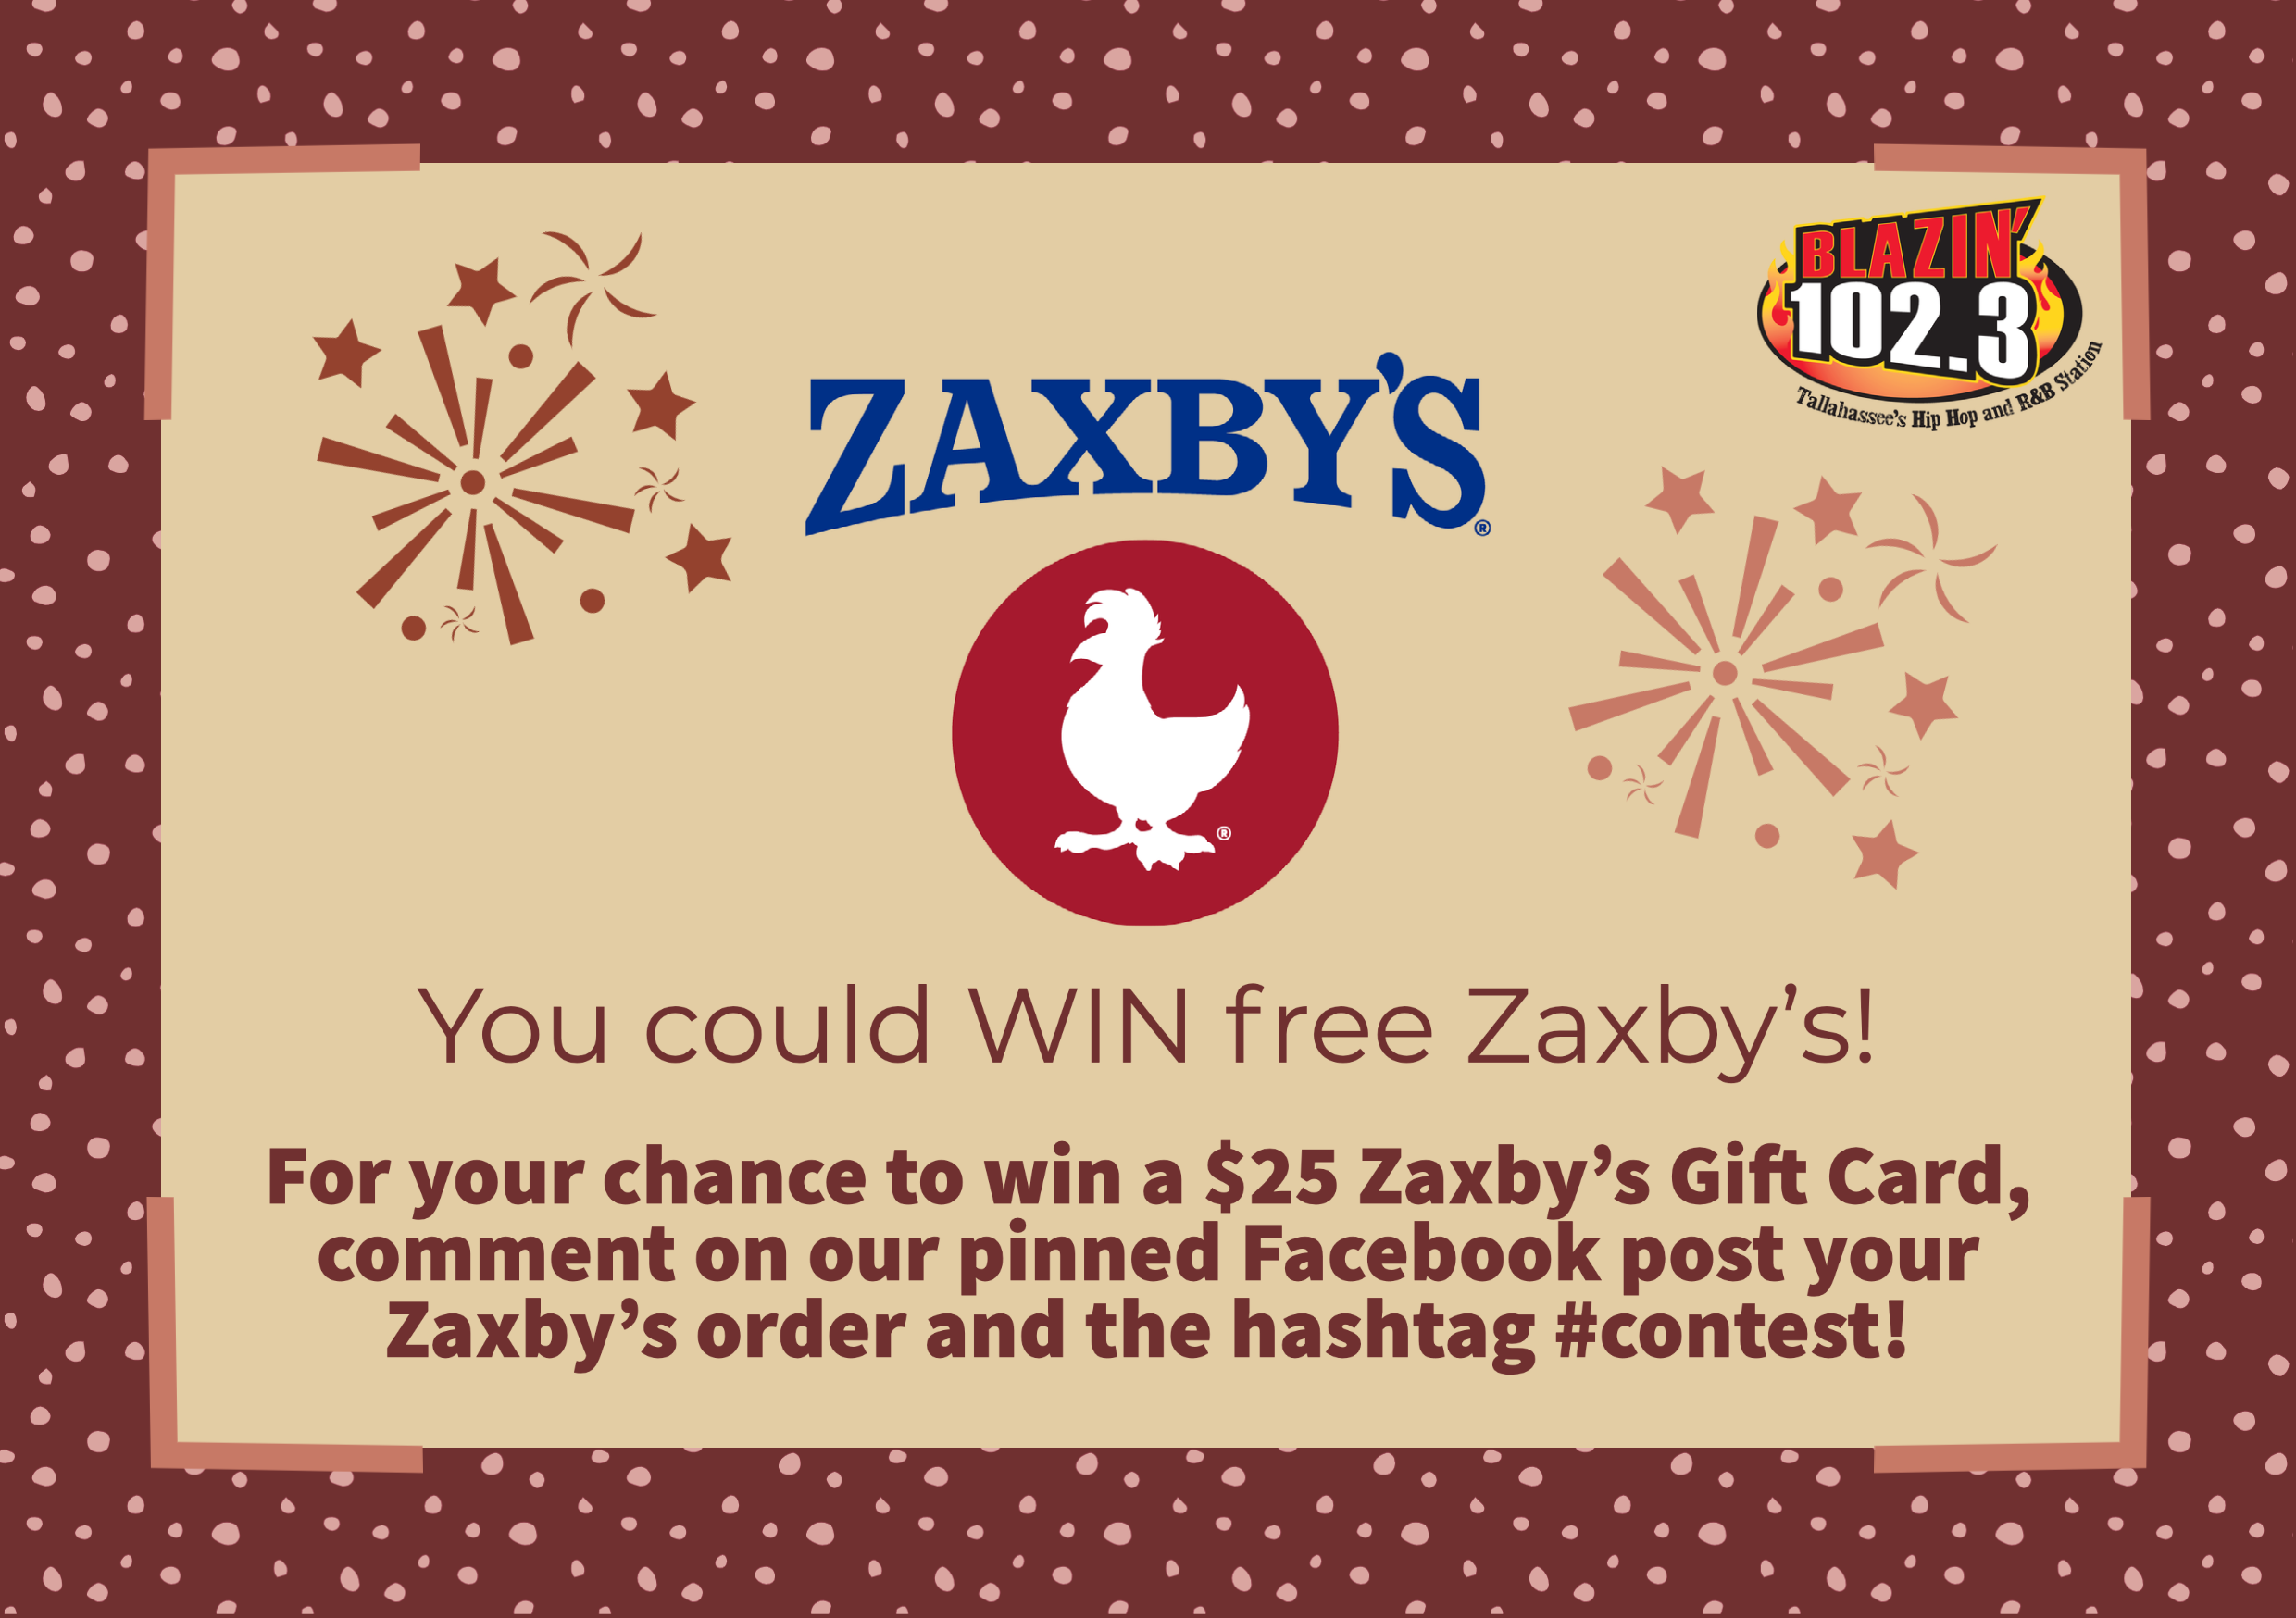 Chance to WIN a $25 Zaxby's gift card!